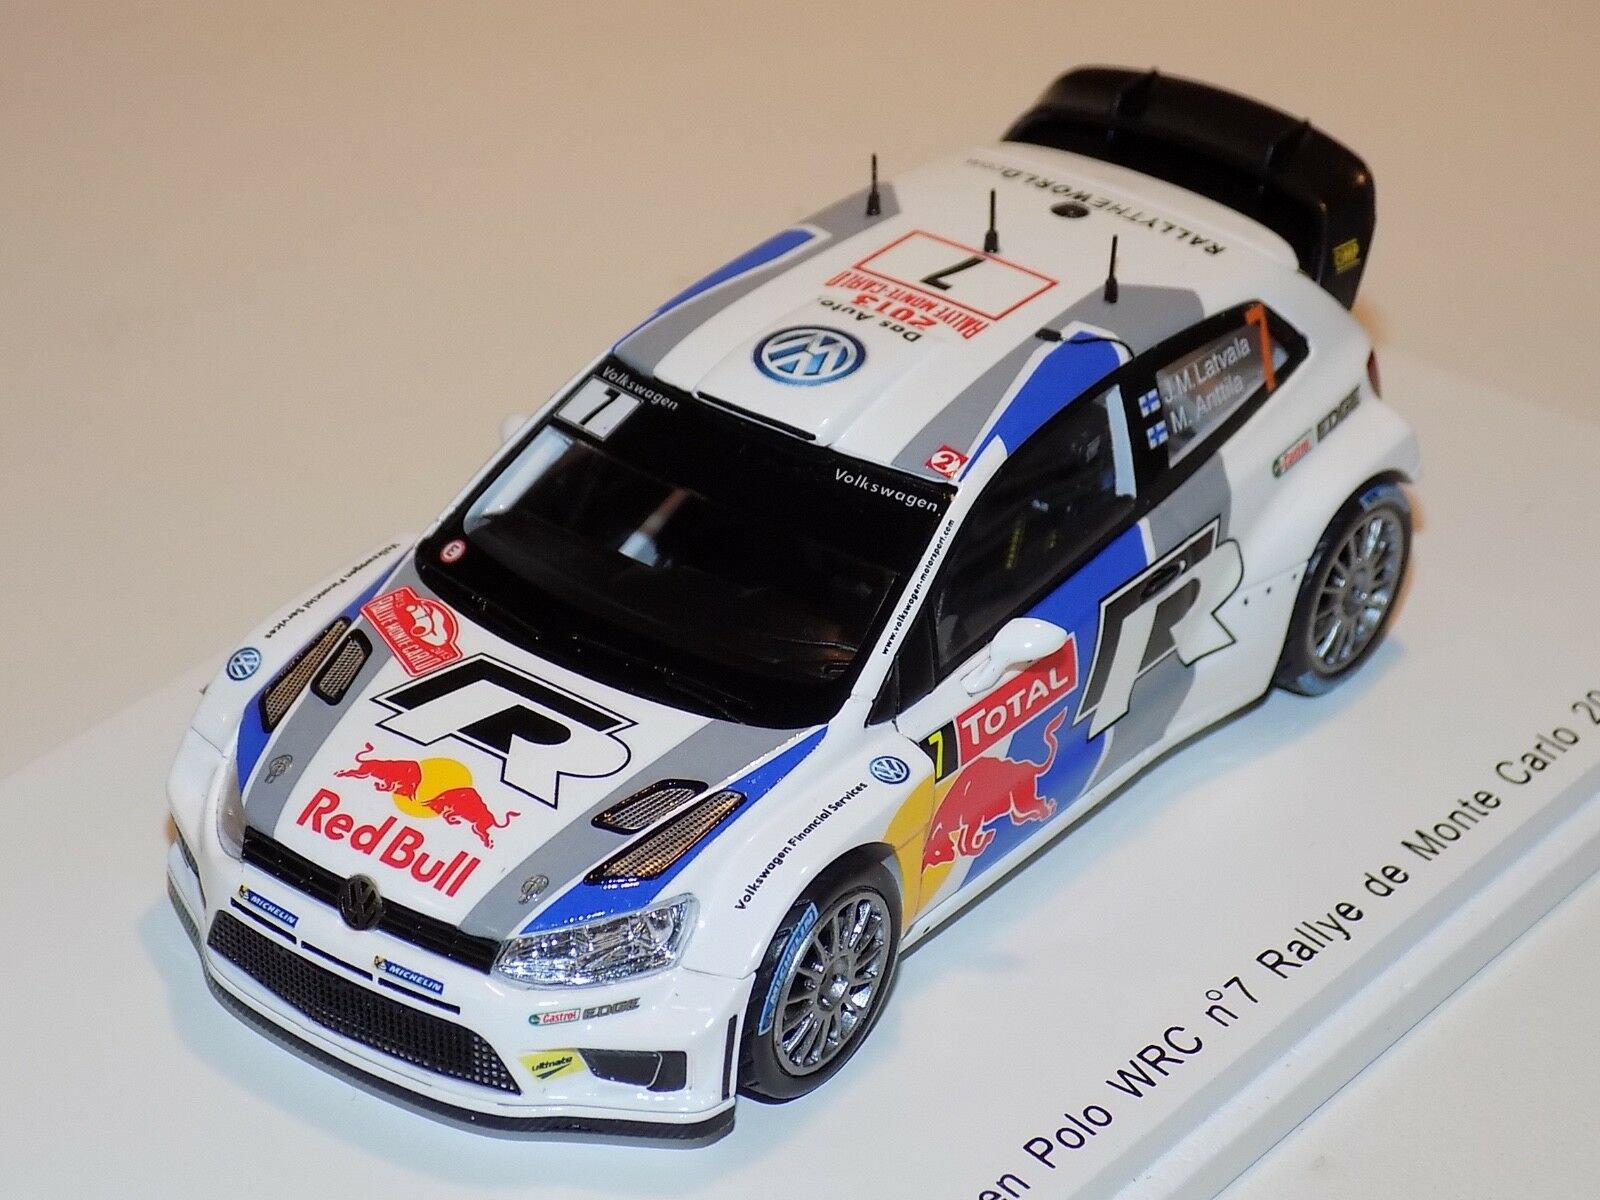 1 43 SPARK Volkswagen Polo WRC voiture  7 Rallye Monte Carlo 2013 J.M. Lavala S3358